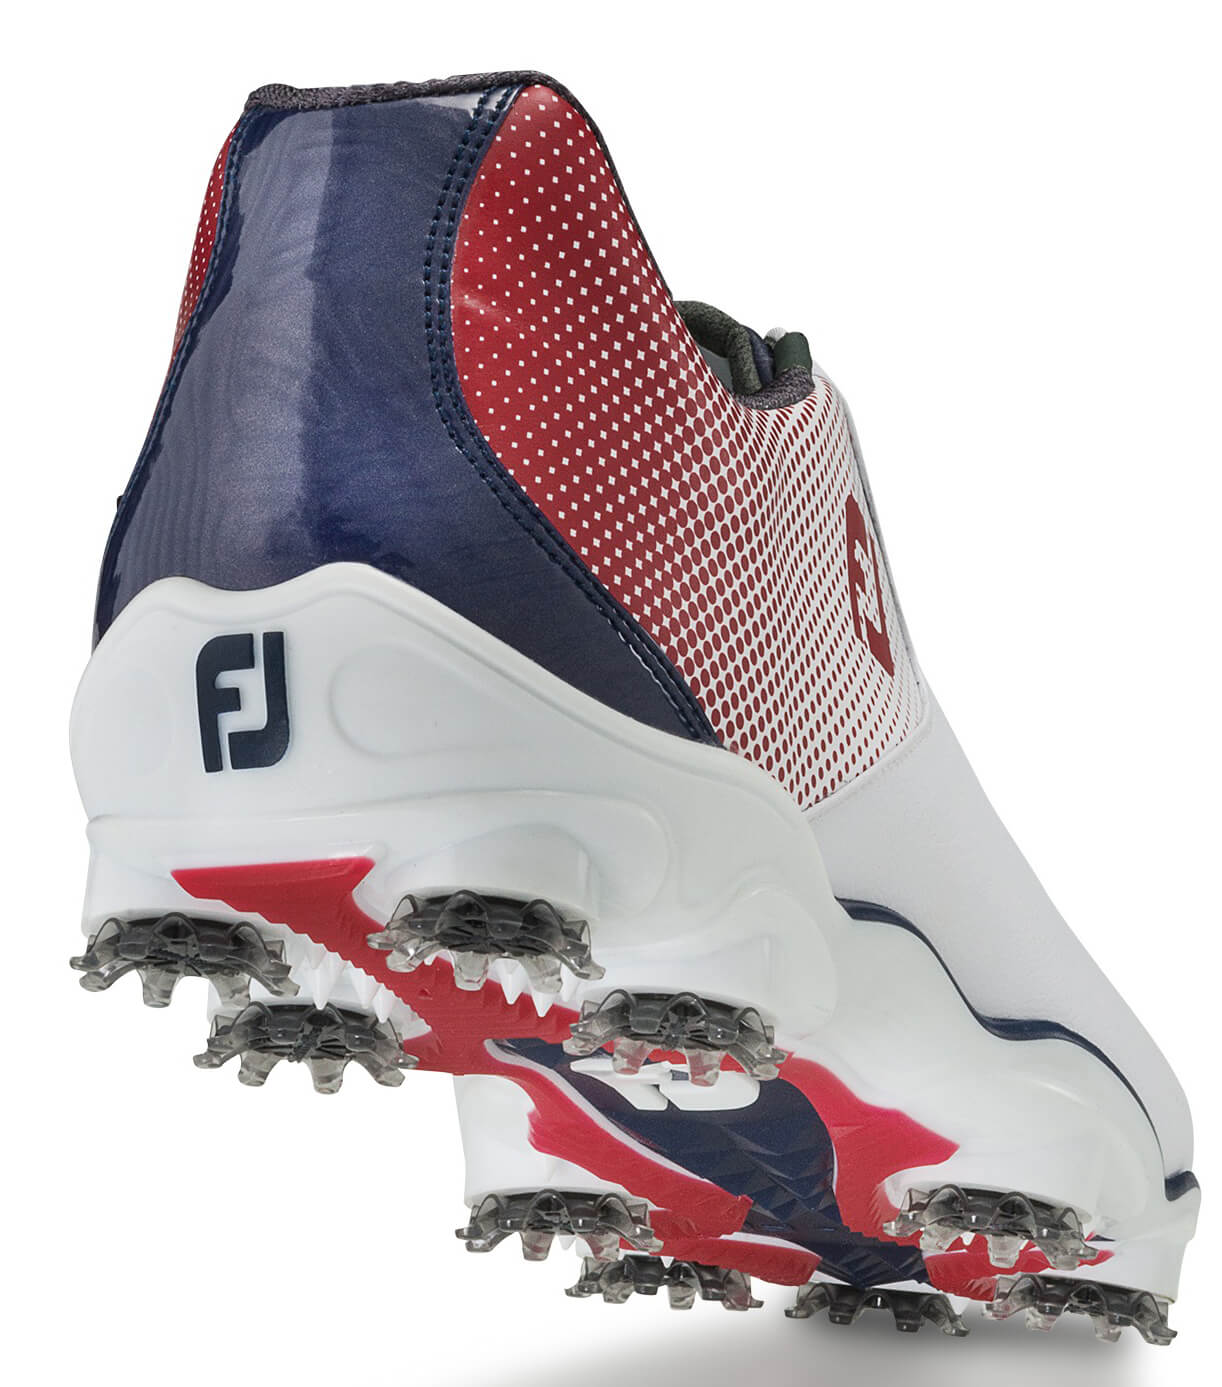 FootJoy-DNA-Helix-Golf-Shoes-Leather-Waterproof-Men-039-s-New-Choose-Color-amp-Size thumbnail 3